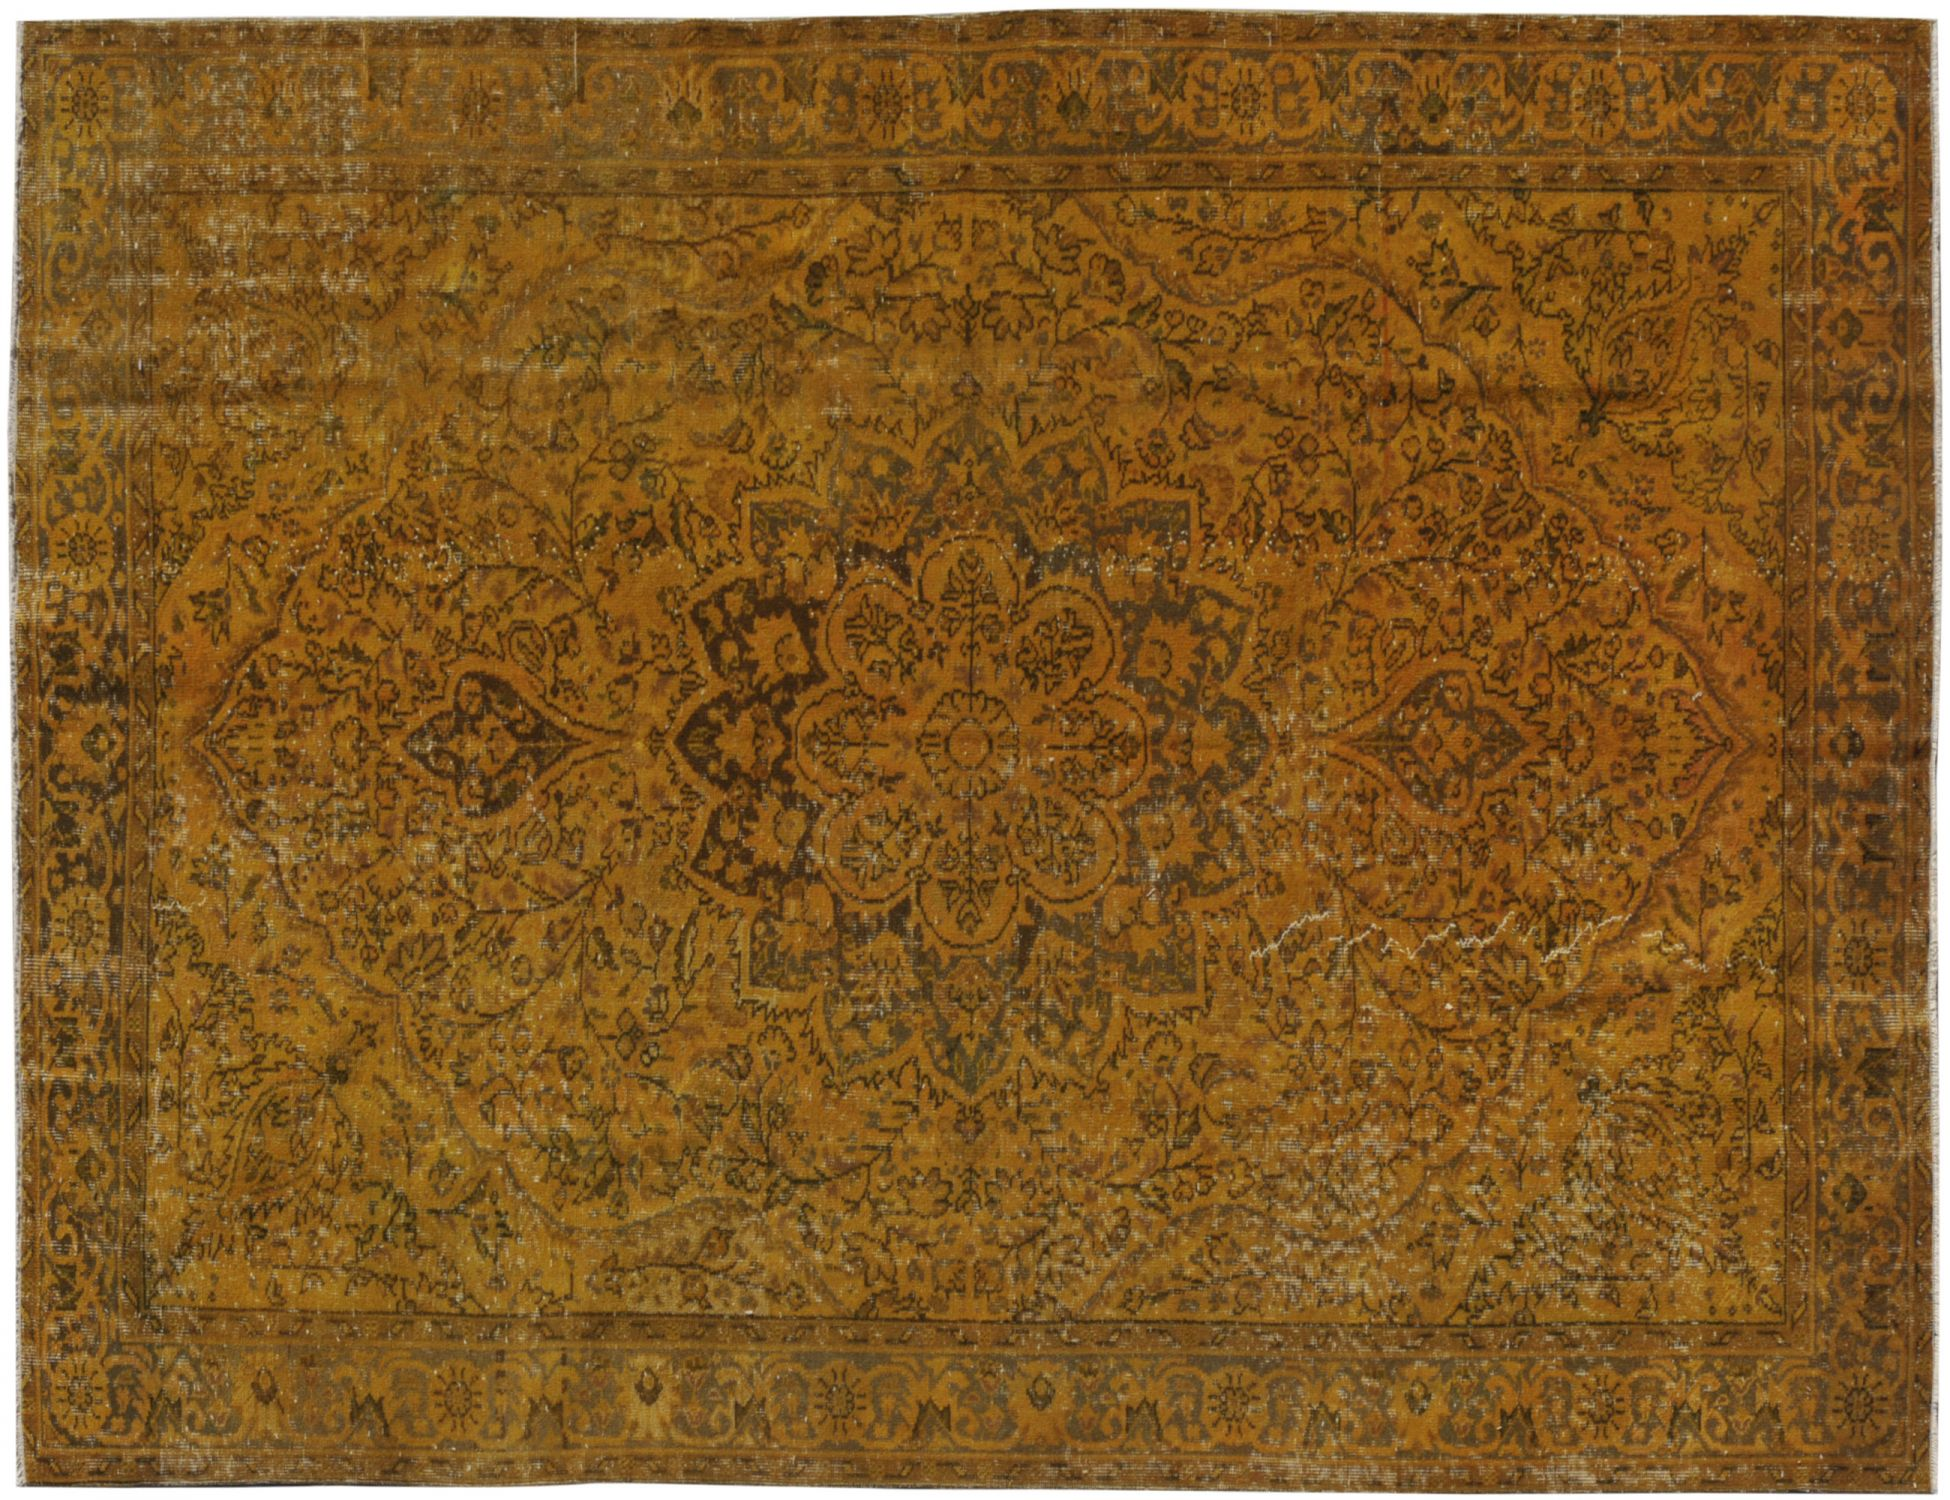 Vintage Carpet  orange <br/>283 x 193 cm